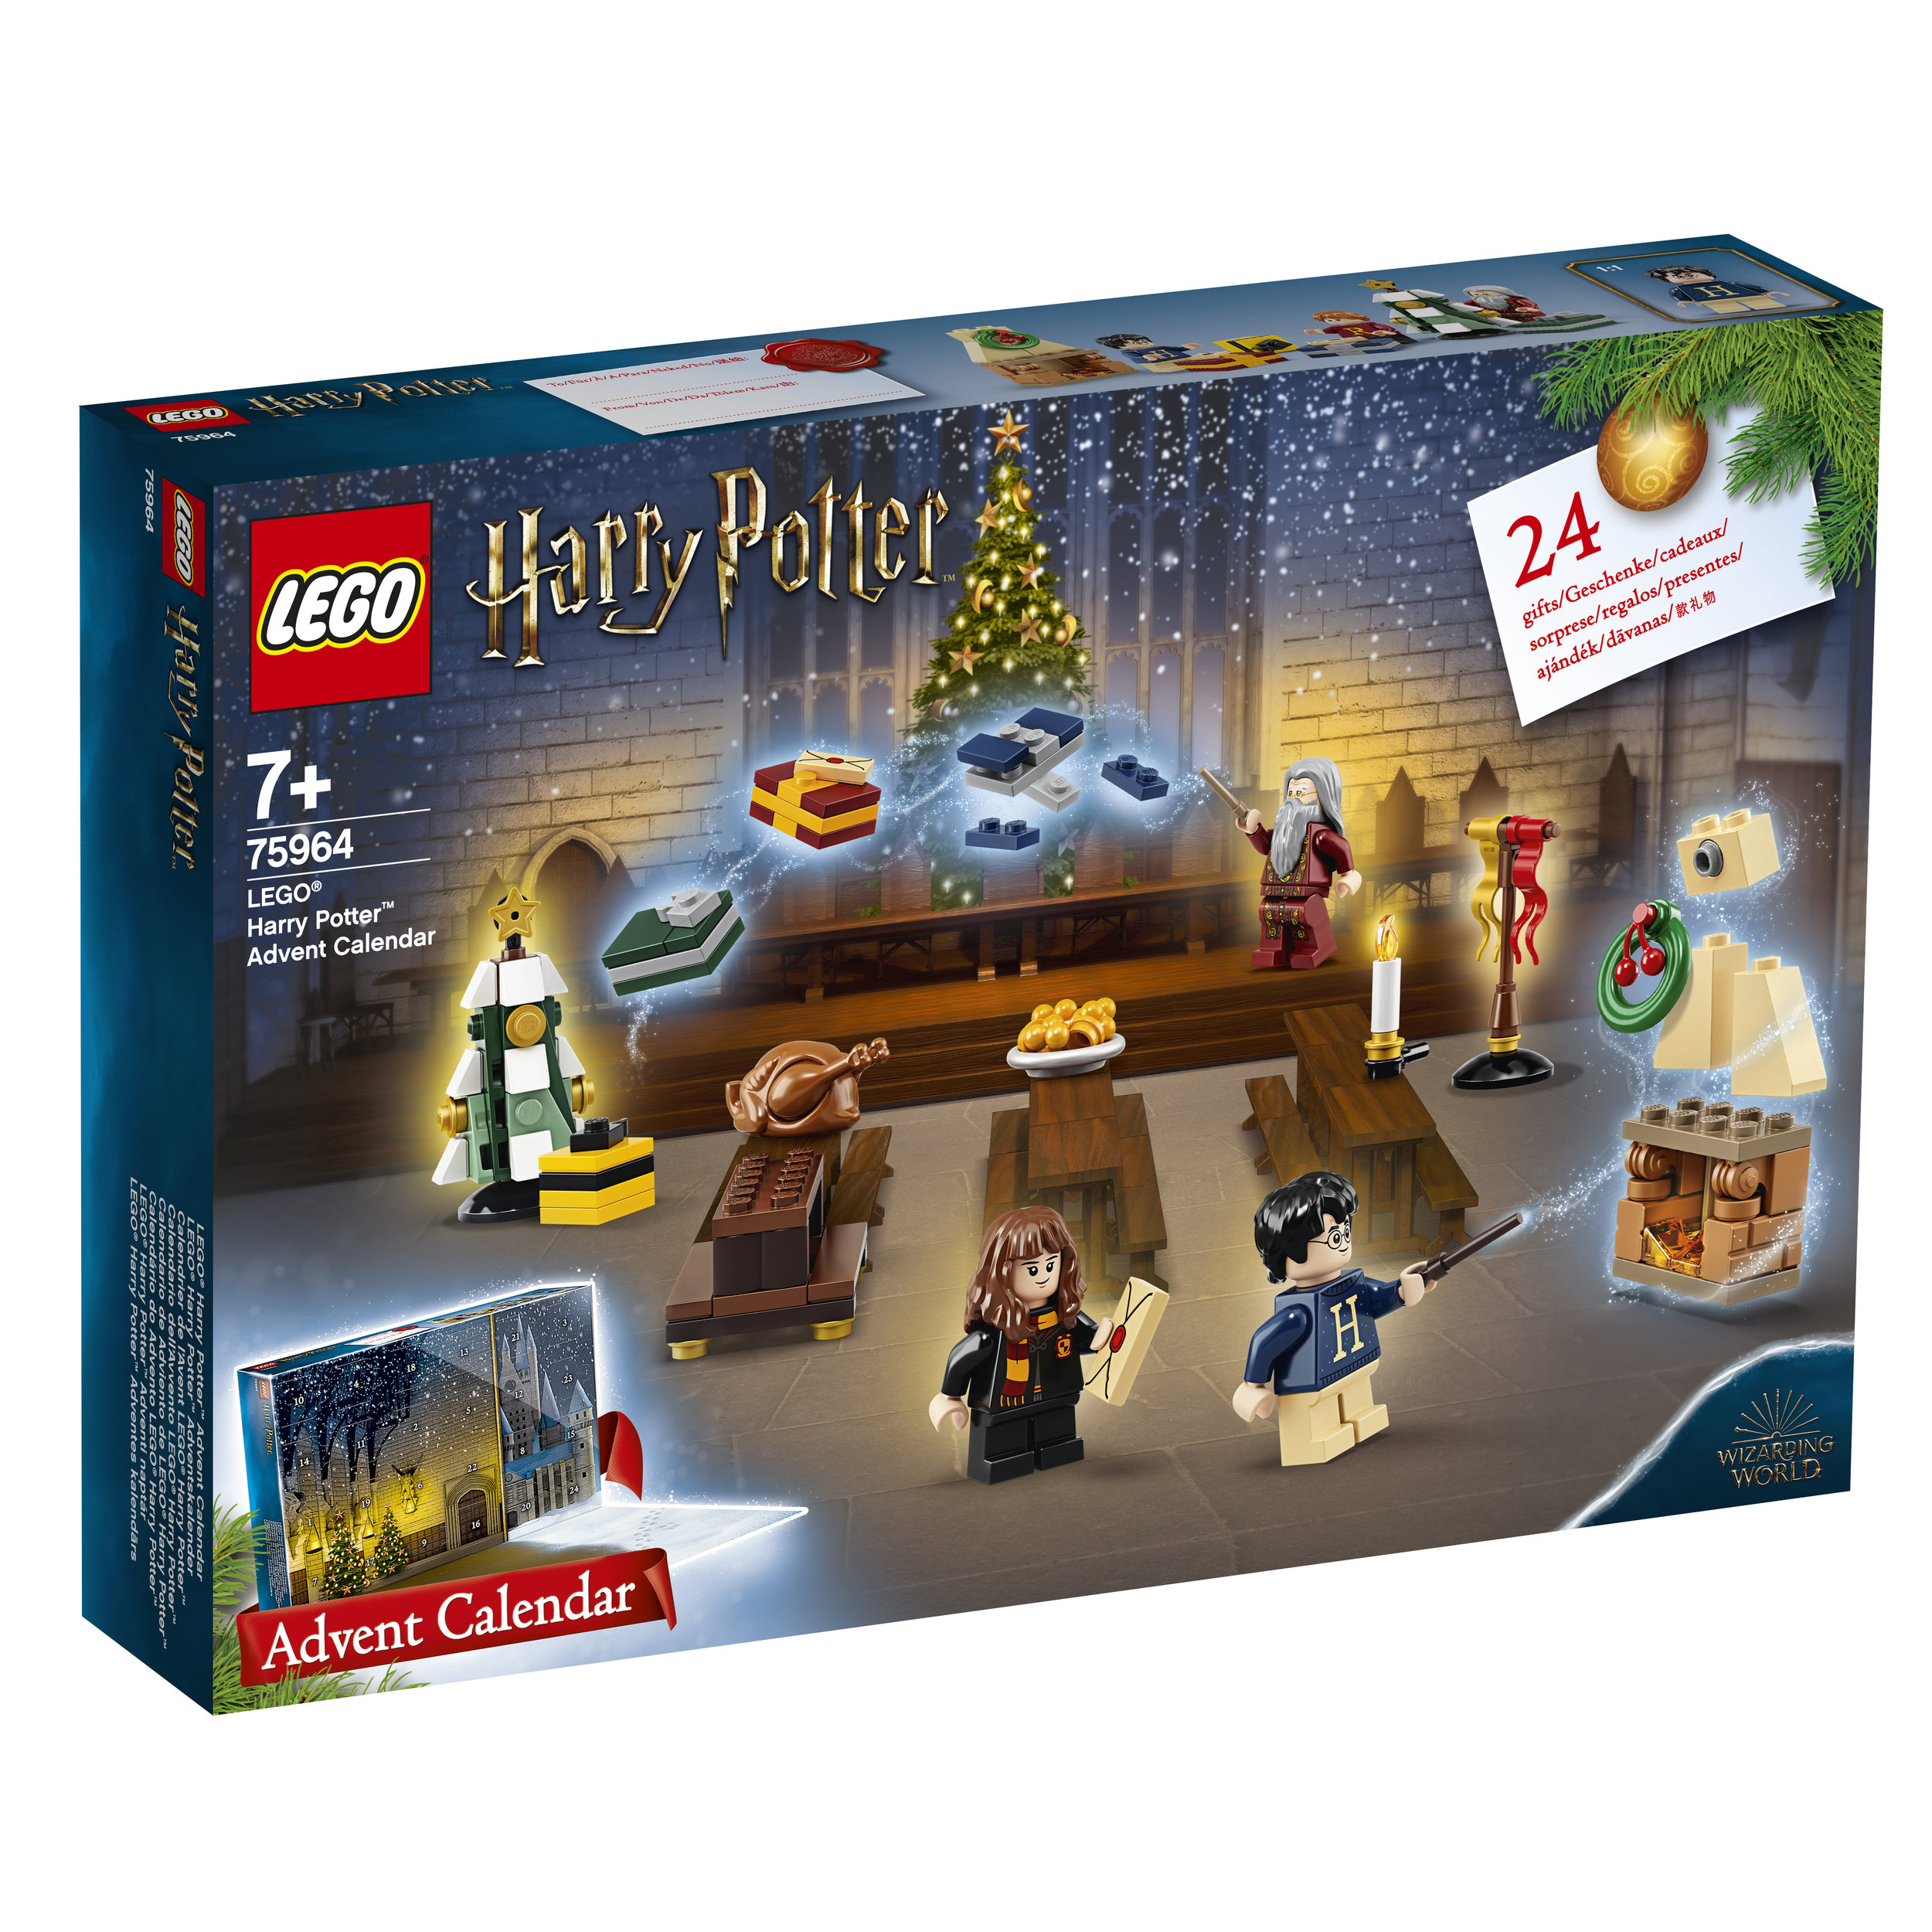 Hippogriffs Dragons And Dementors Galore In New Lego Harry